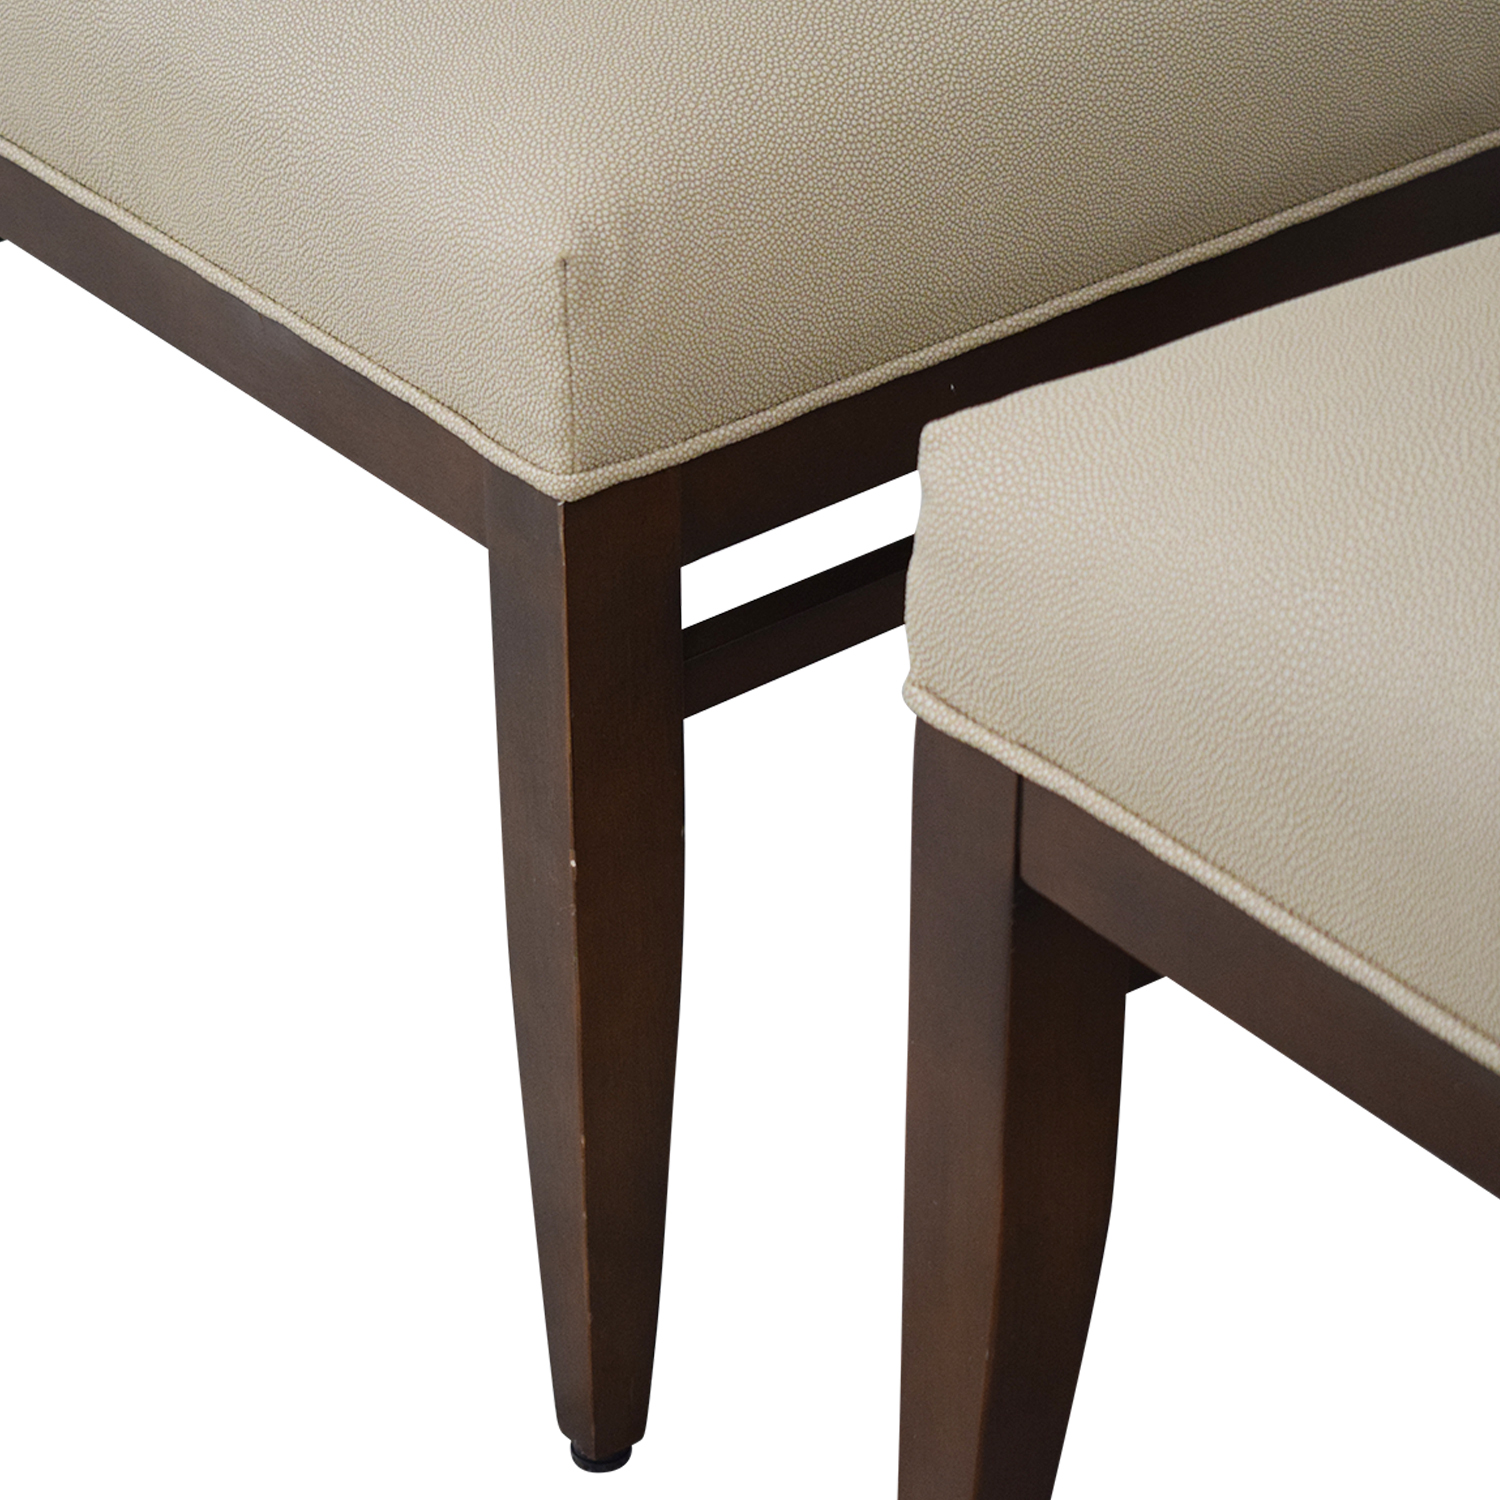 Duralee Duralee Kent Upholstered Dining Chairs used